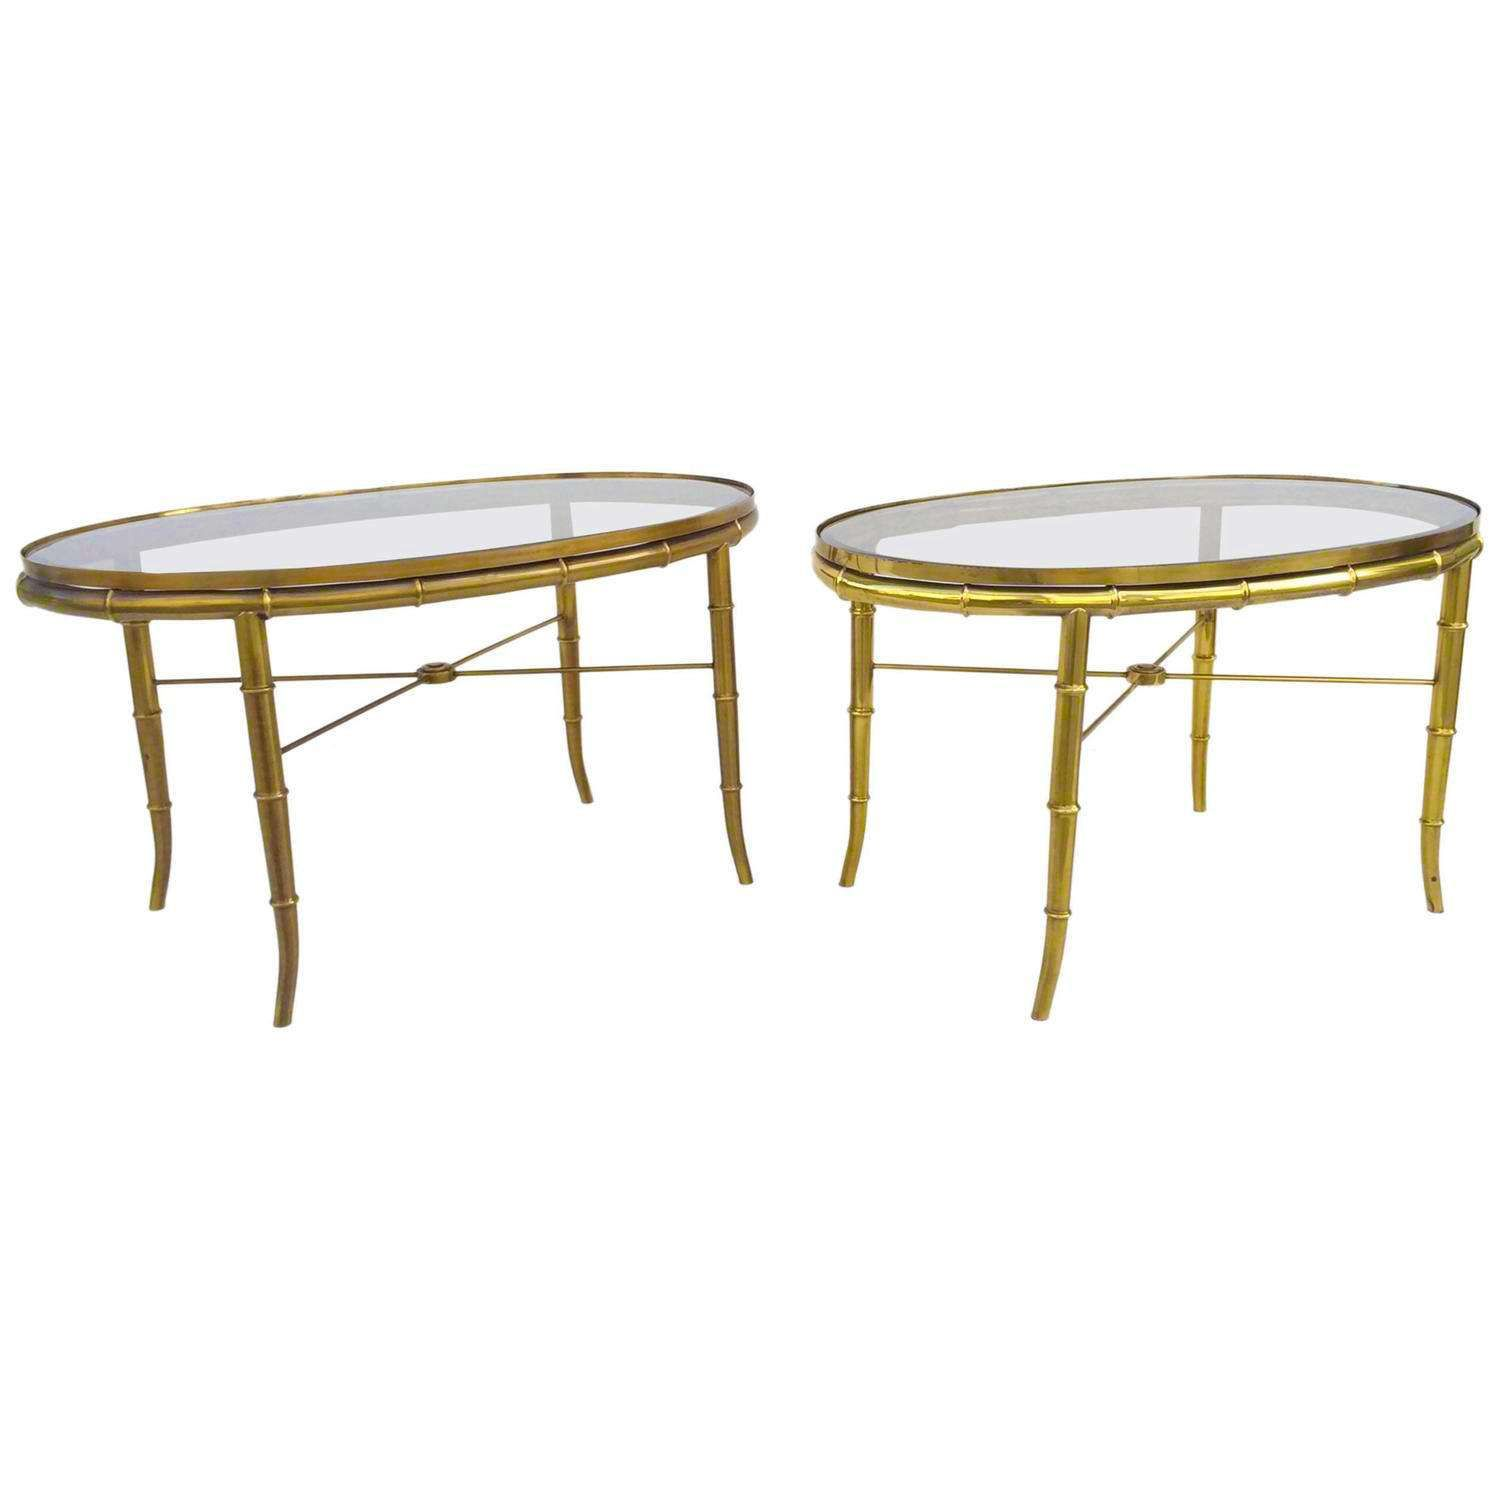 Pair Mid Century Mastercraft Oval Faux Bamboo Glass Brass Cocktail Side Tables By Fusionretro On Etsy Faux Bamboo Table Glass Side Tables [ 1500 x 1500 Pixel ]